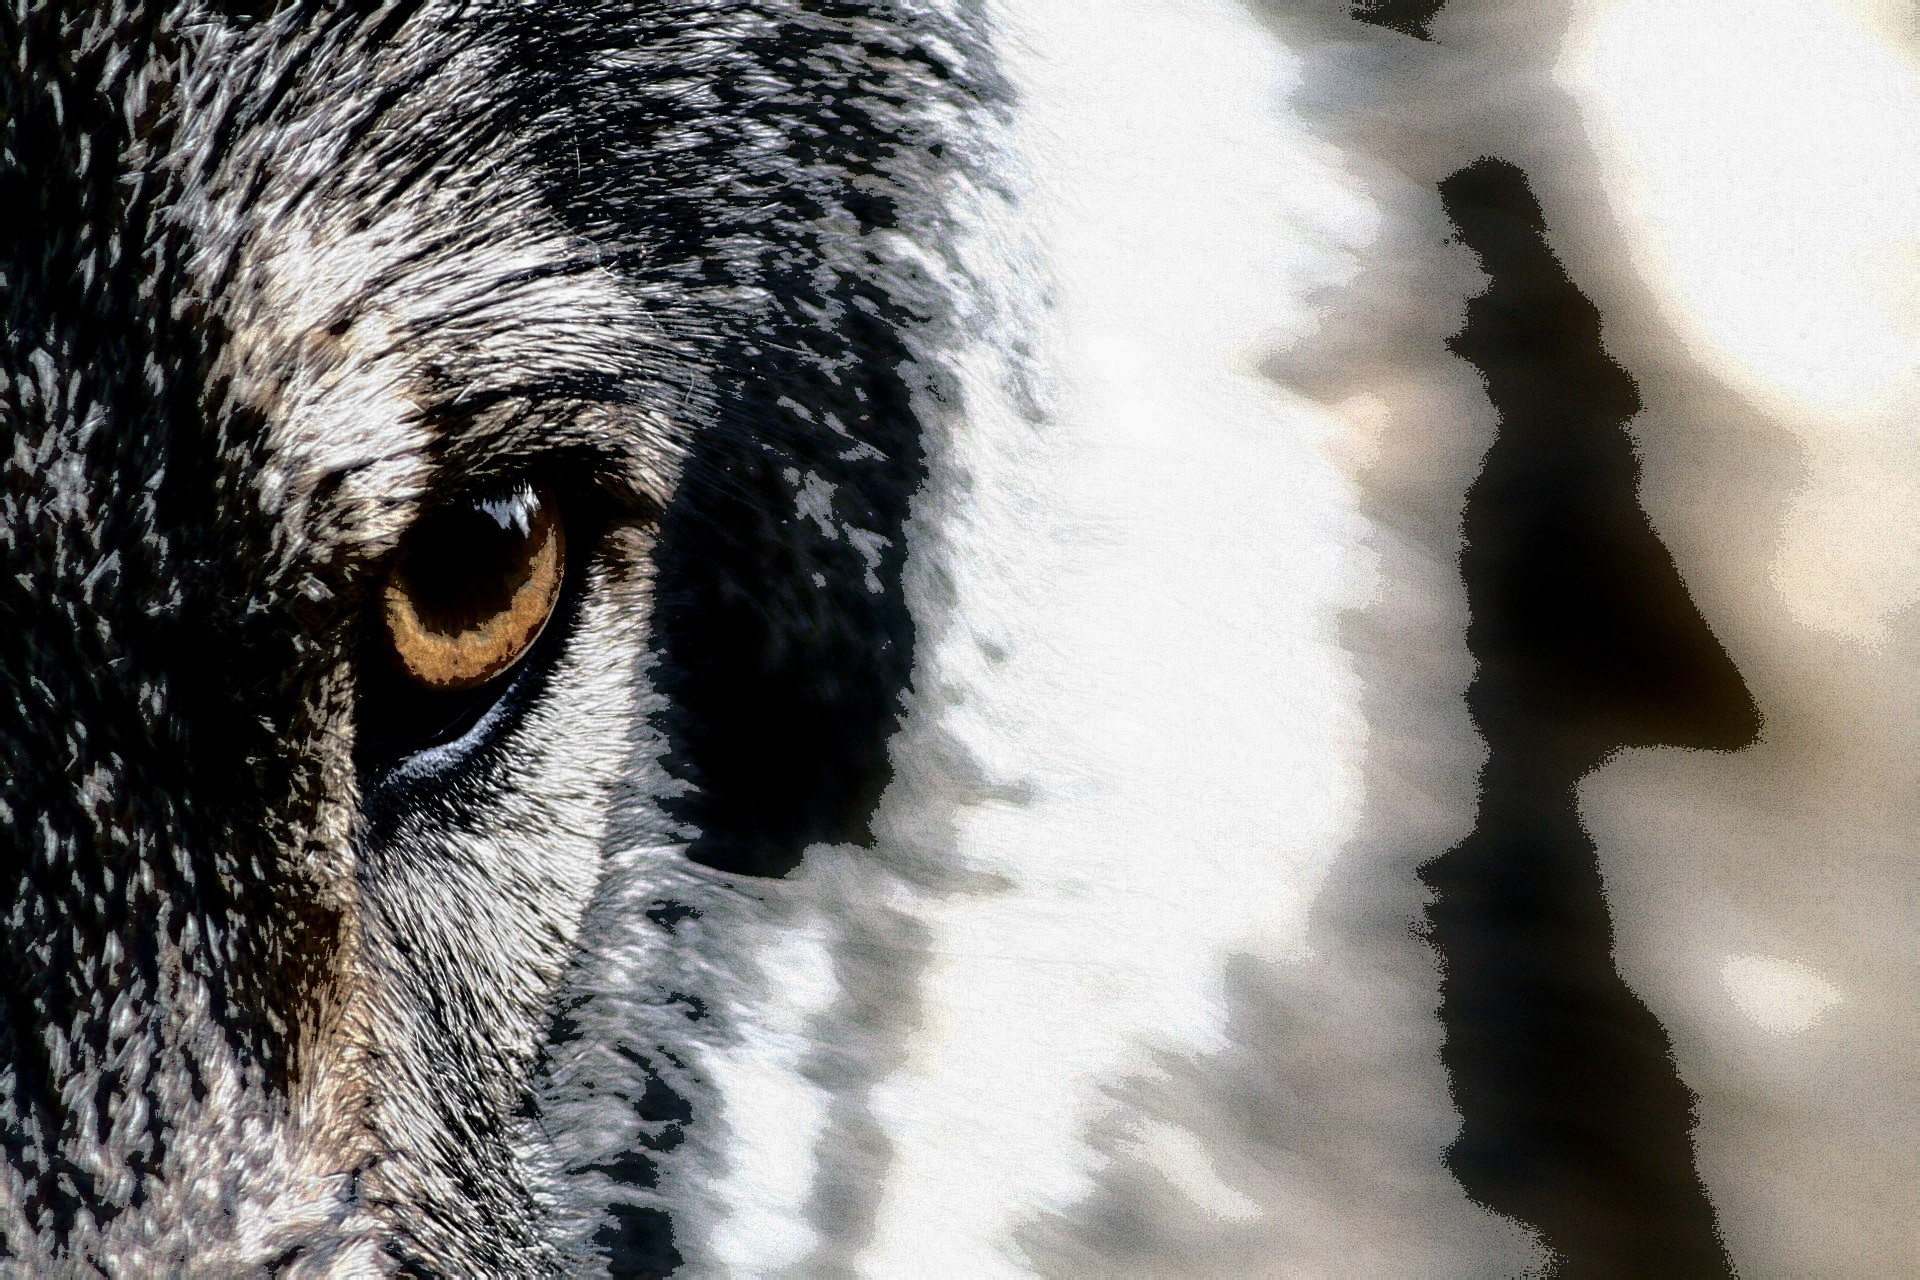 Closeup of a wolf's eye with effects that make it look like a human shadow to the right.